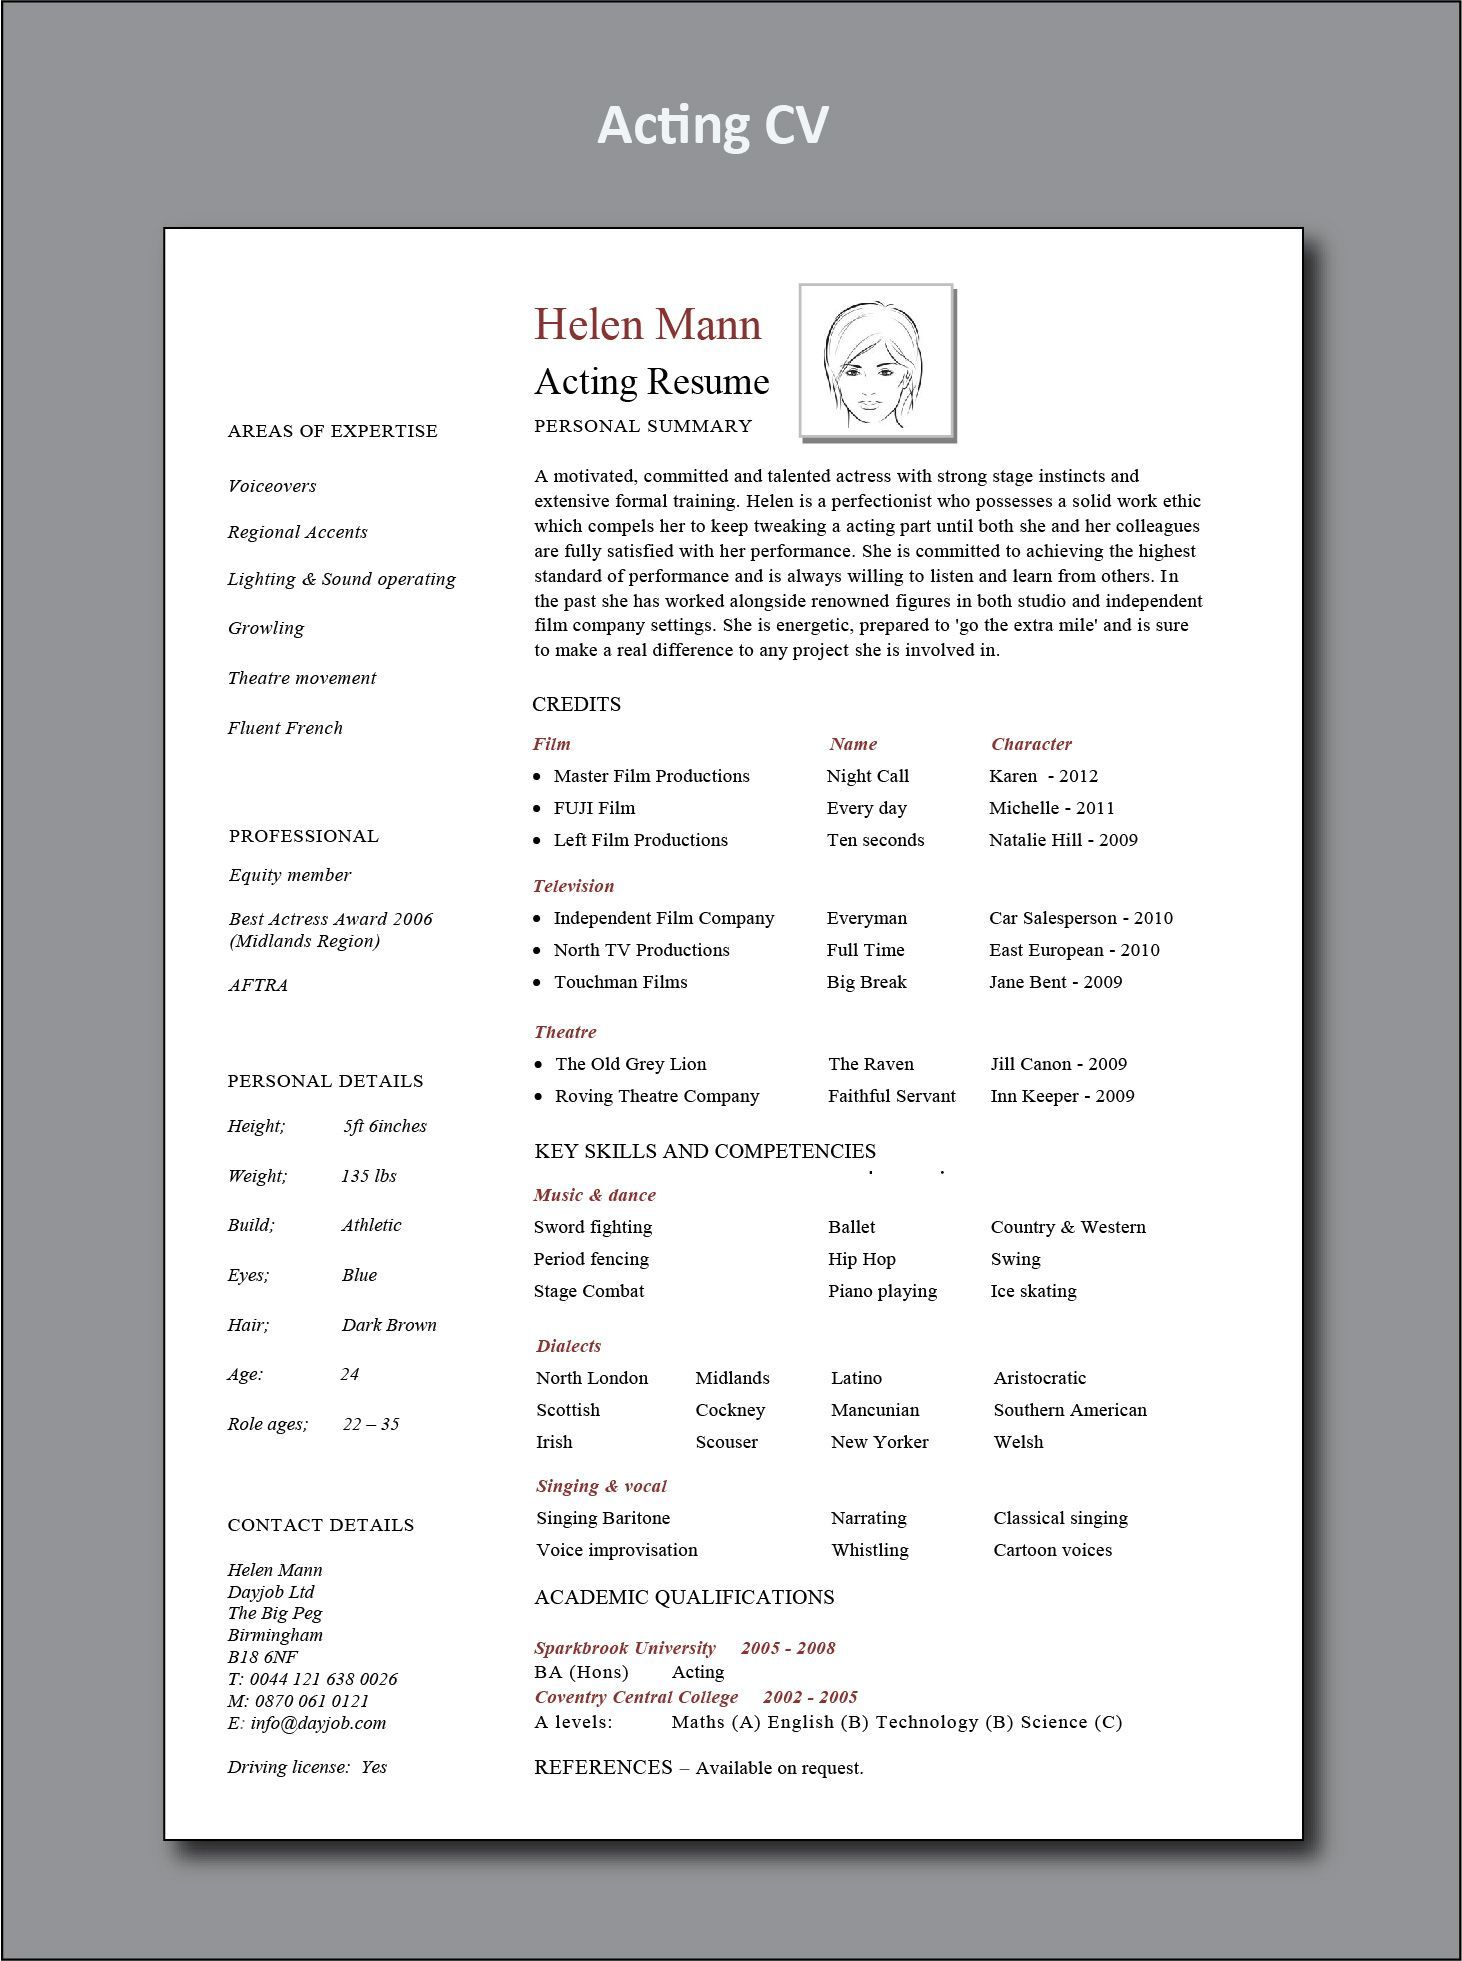 Acting CV example, resume, for beginners, download